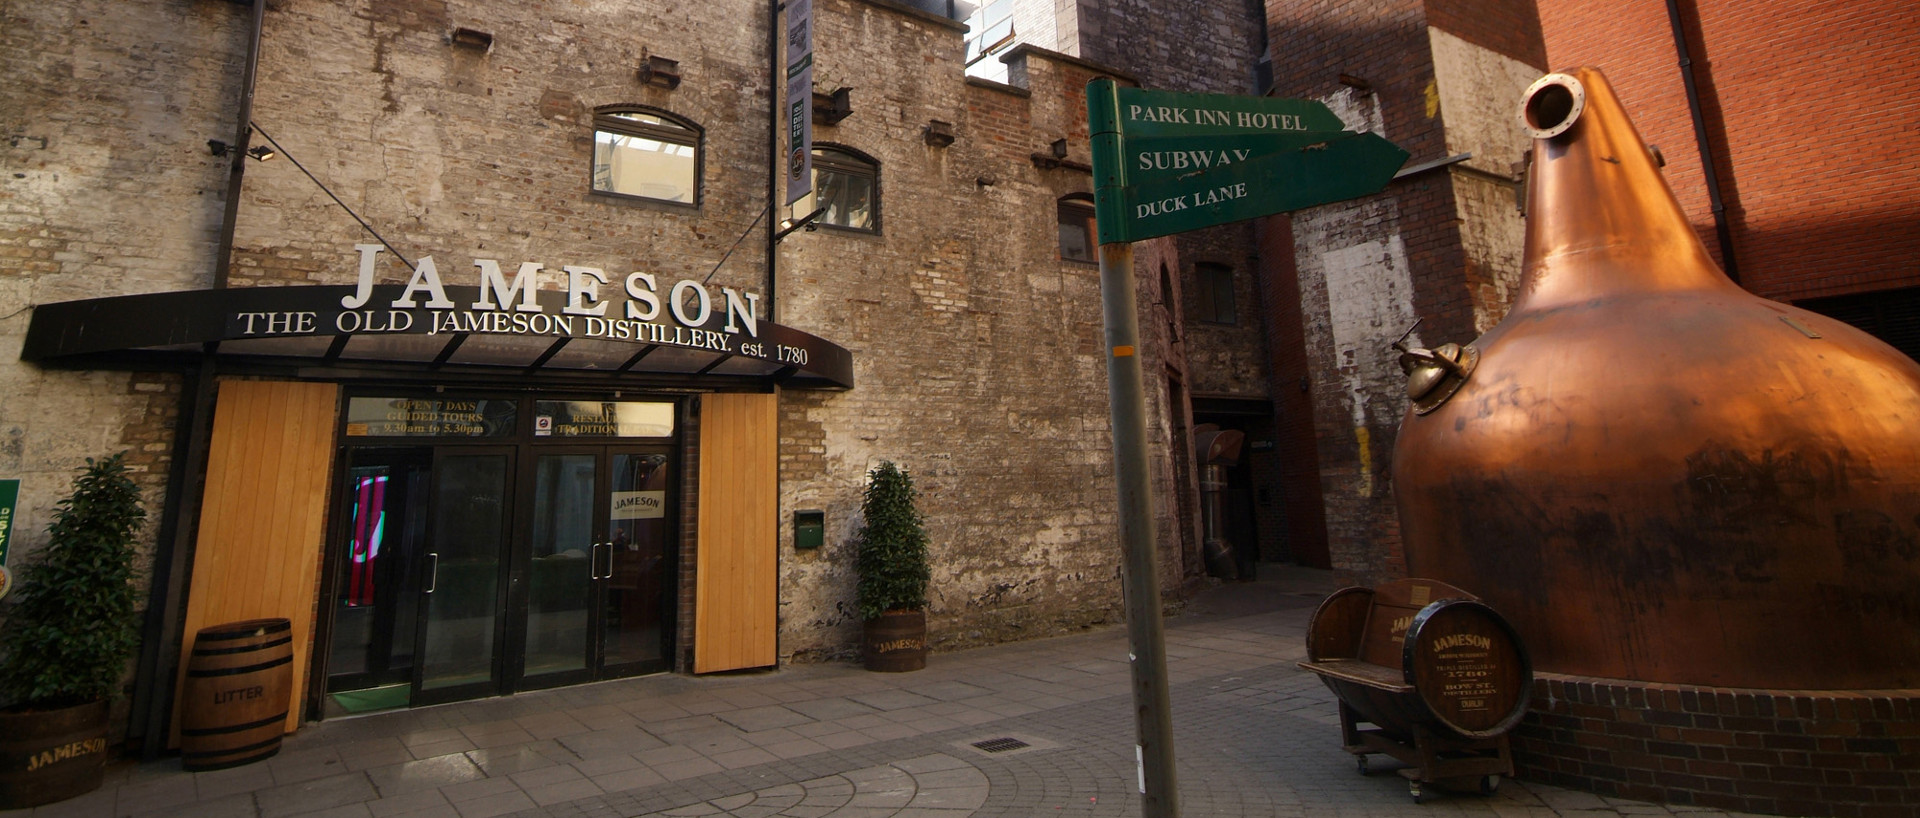 The entrance to Jameson Distillery in Smithfield